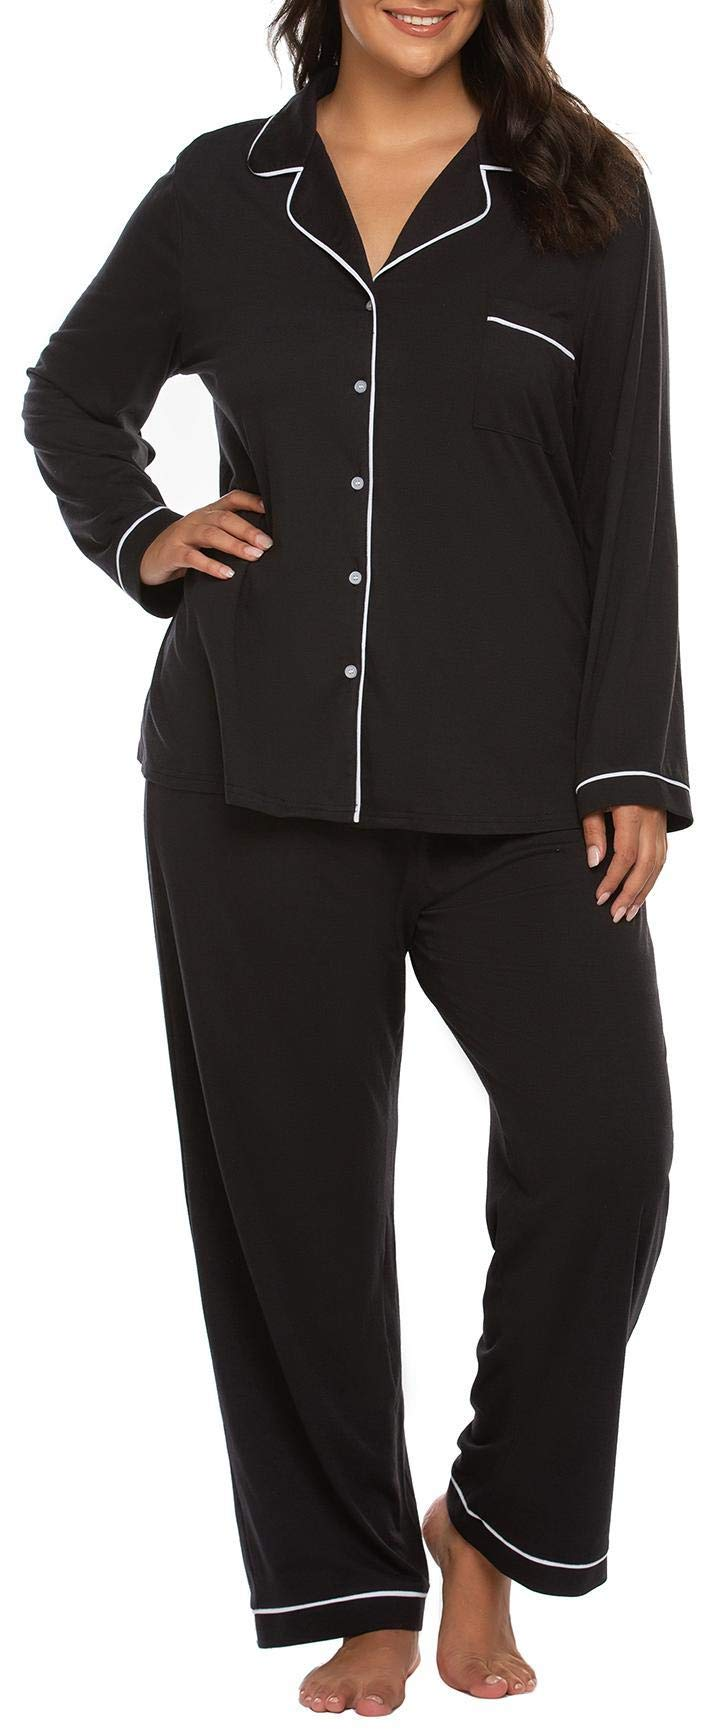 IN'VOLAND Women's Plus Size Pajamas Set Long Sleeve Sleepwear Button Down Night Shirt Soft Pjs Lounge Sets16W-24W Black by IN'VOLAND